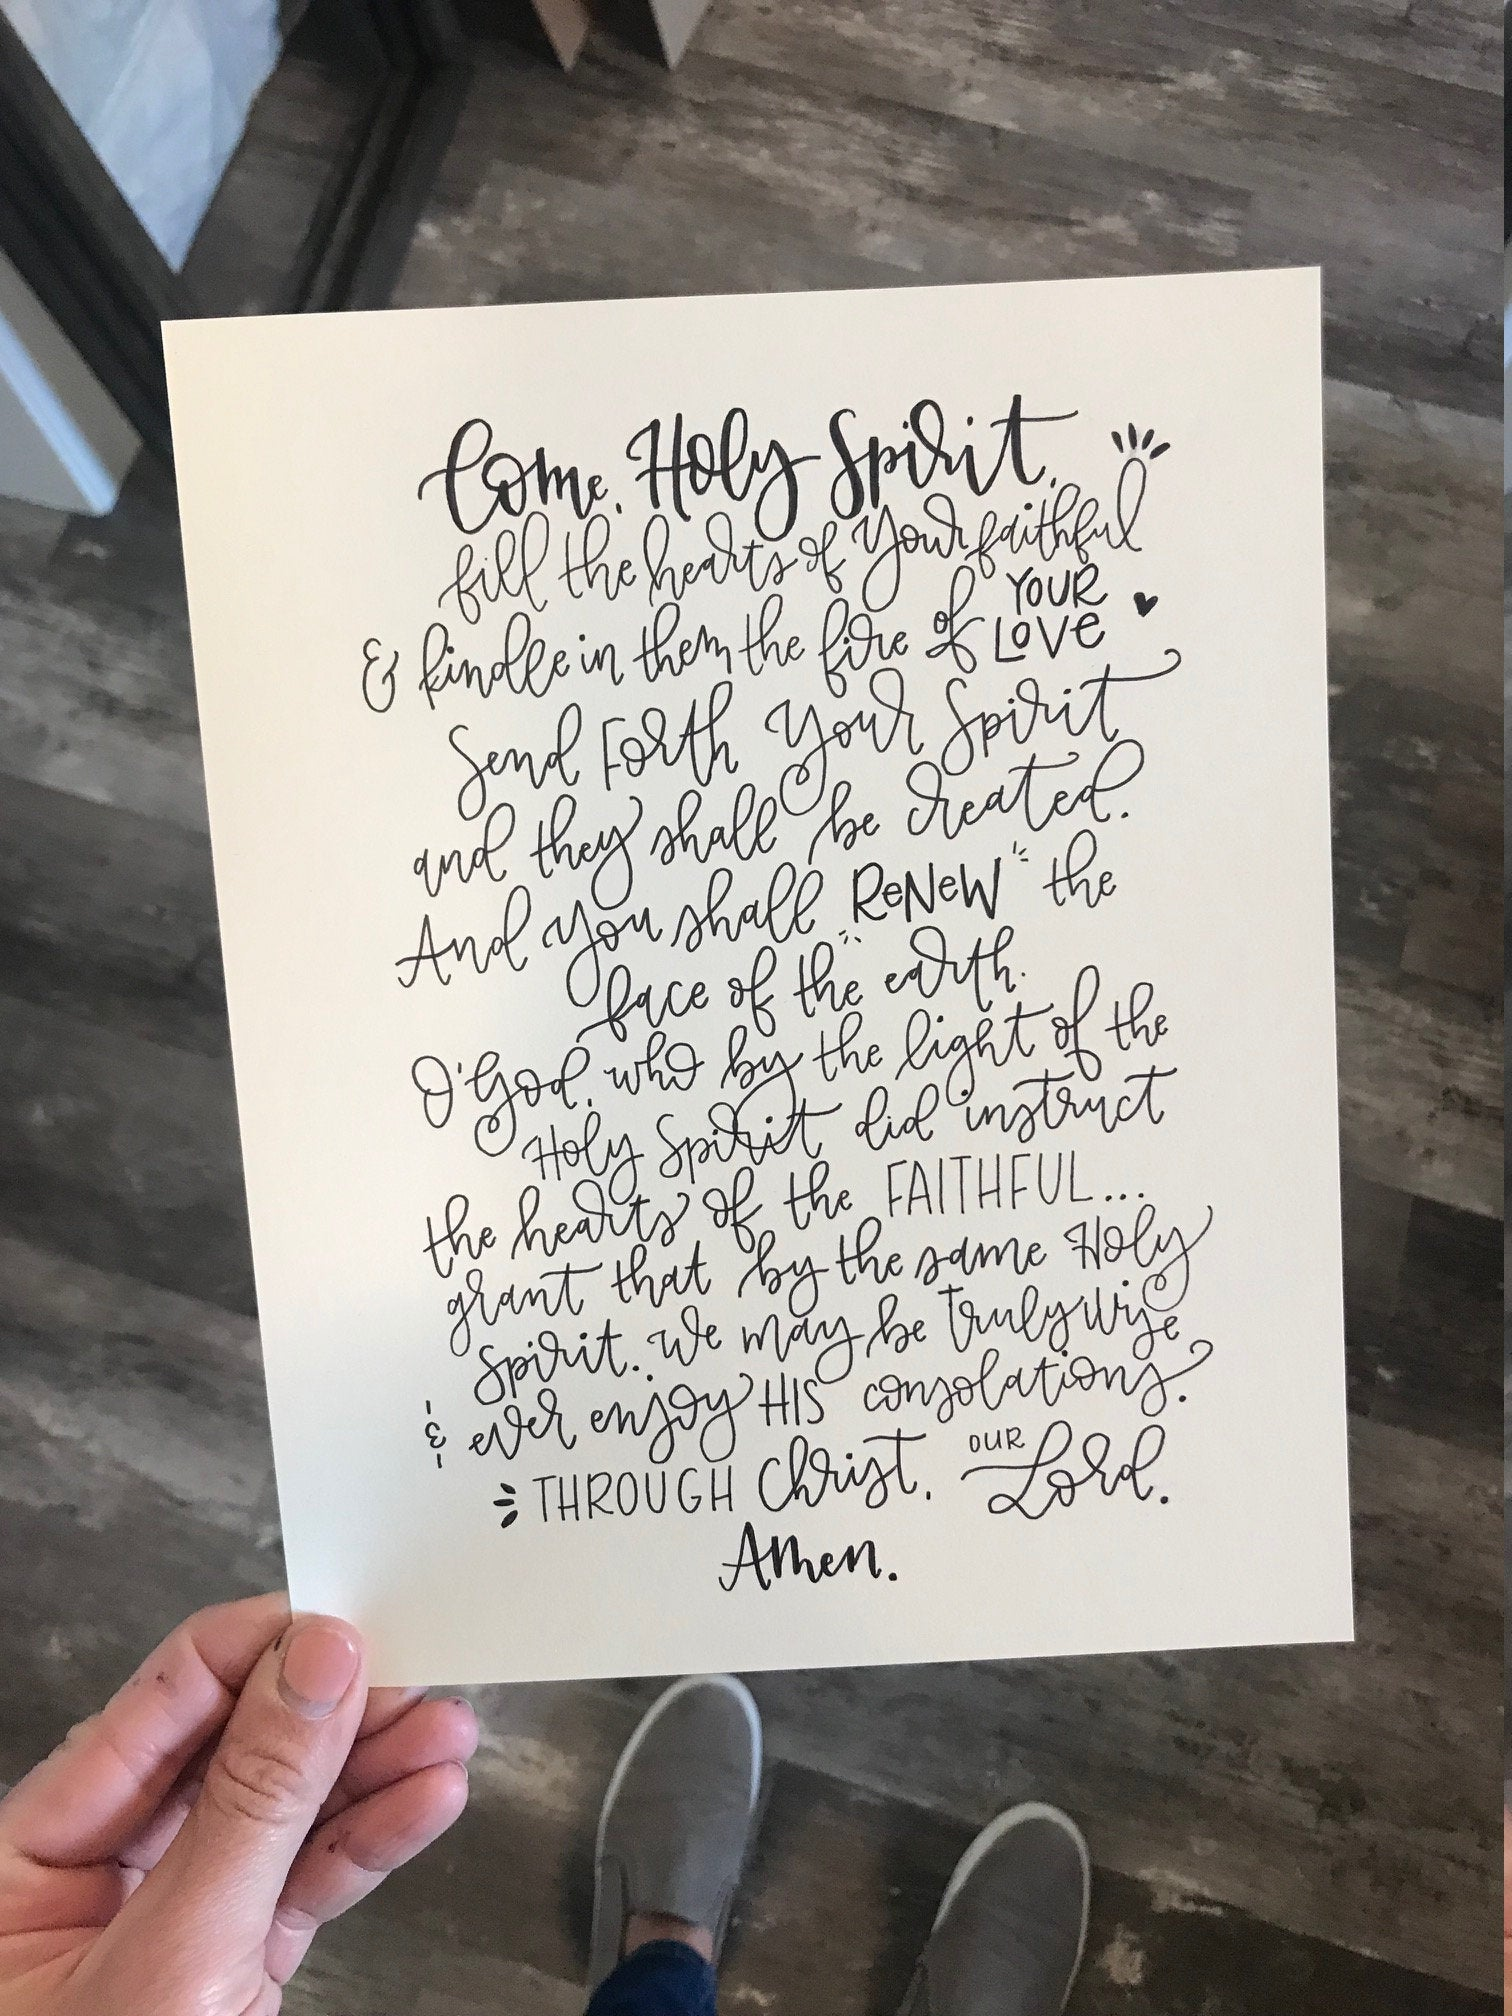 Modern Calligraphy should be legible. Can you read this? I can't